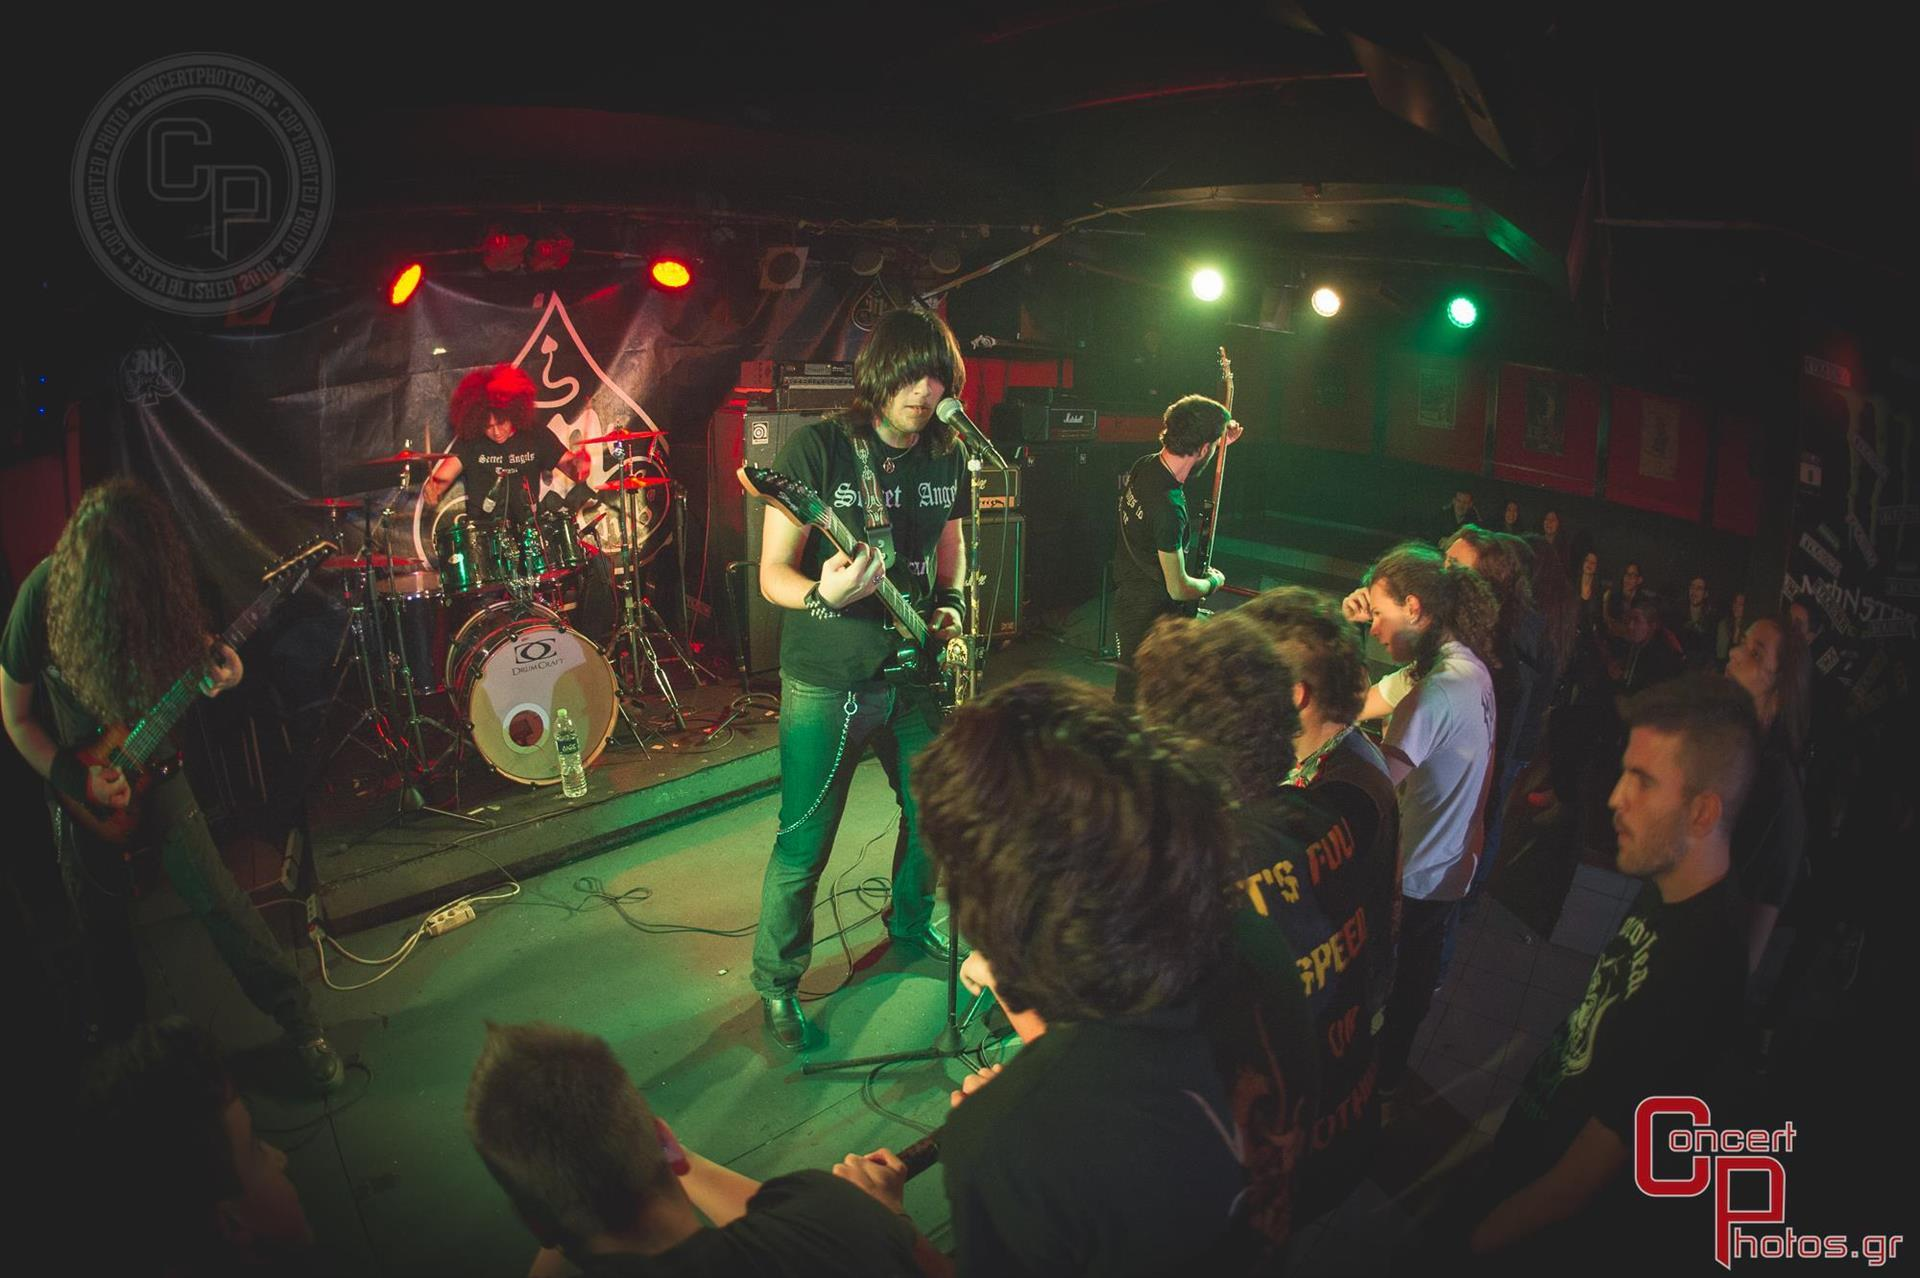 Battle Of The Bands Athens - Leg 3- photographer:  - ConcertPhotos - 20150104_2322_50